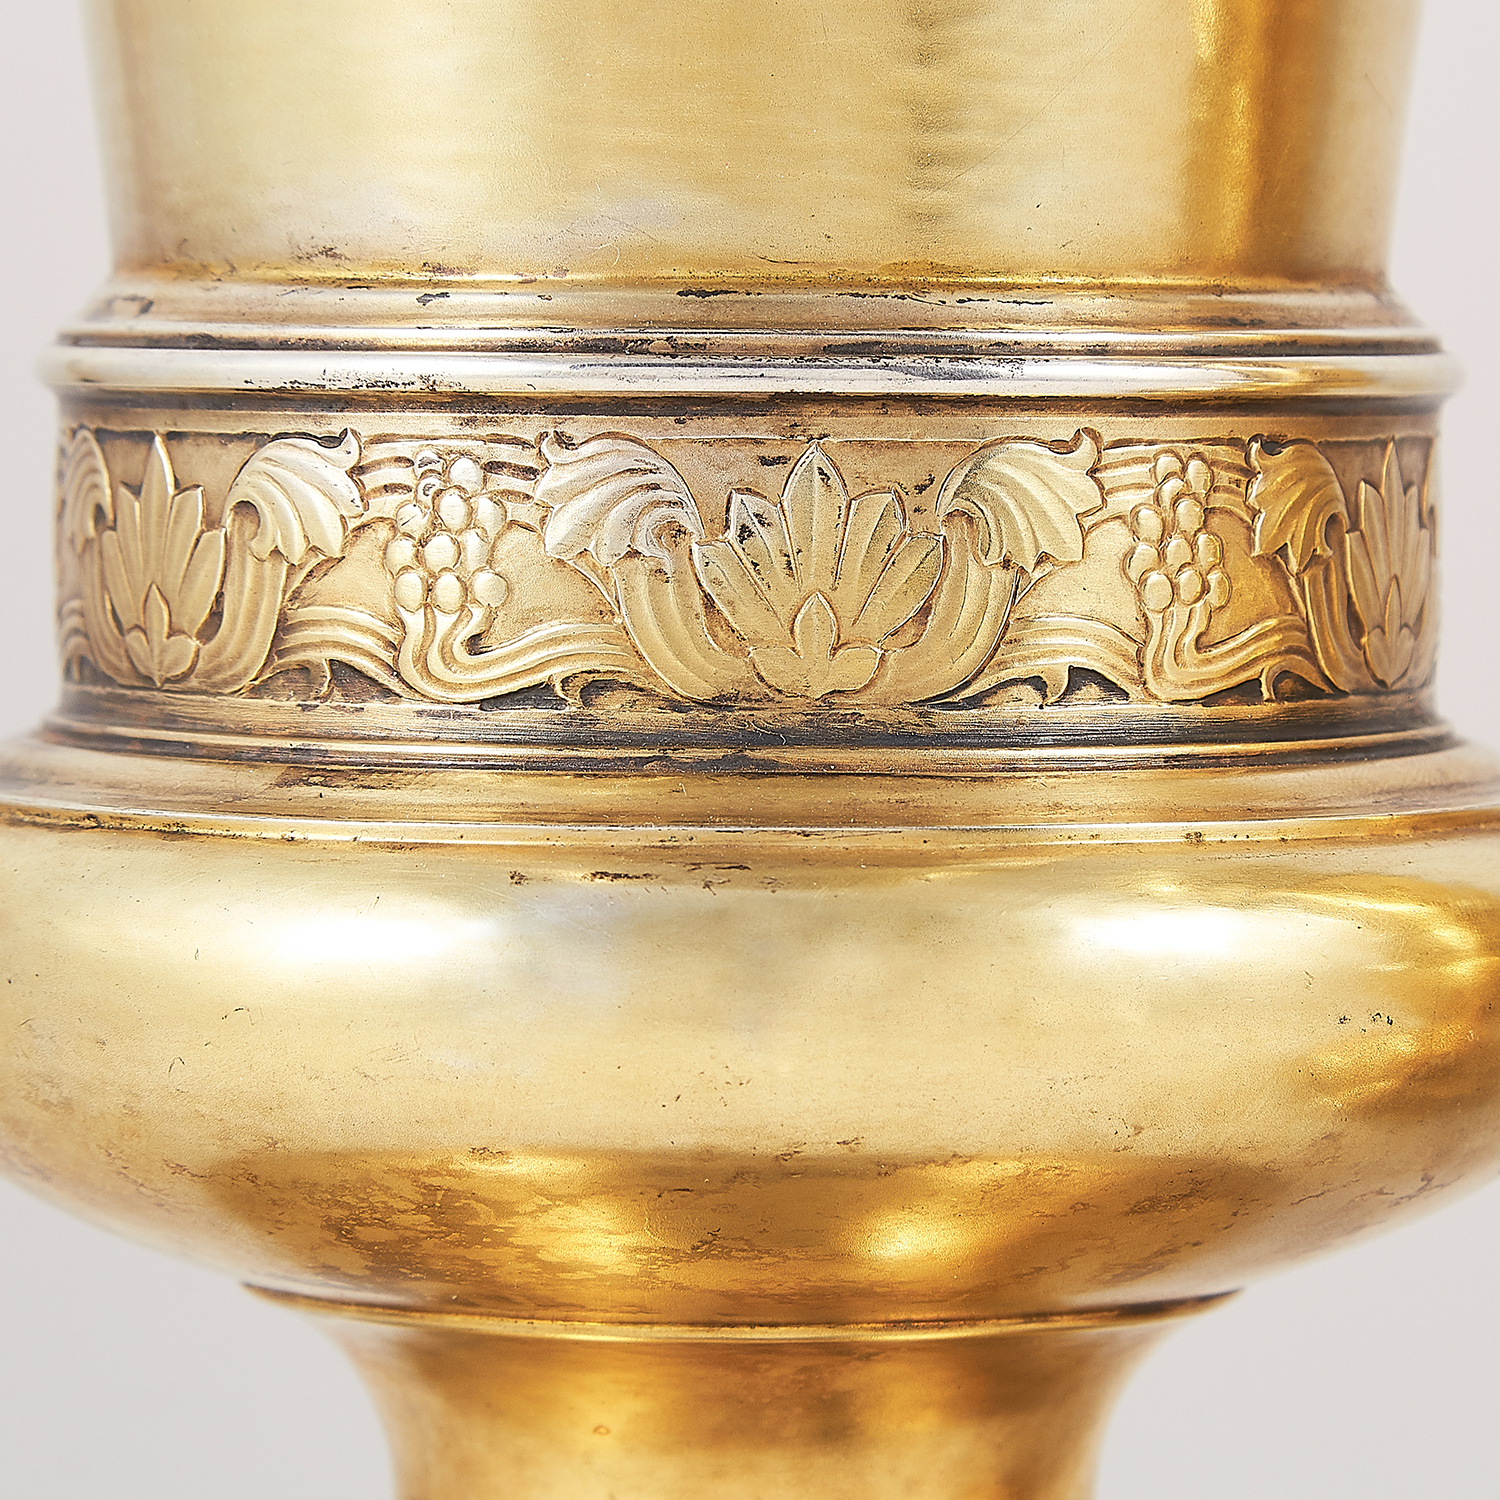 PAIR OF ANTIQUE STERLING SILVER GILT VASES, FREDERICK DENDY WRAY, LONDON 1914 the tapering bodies - Image 3 of 3